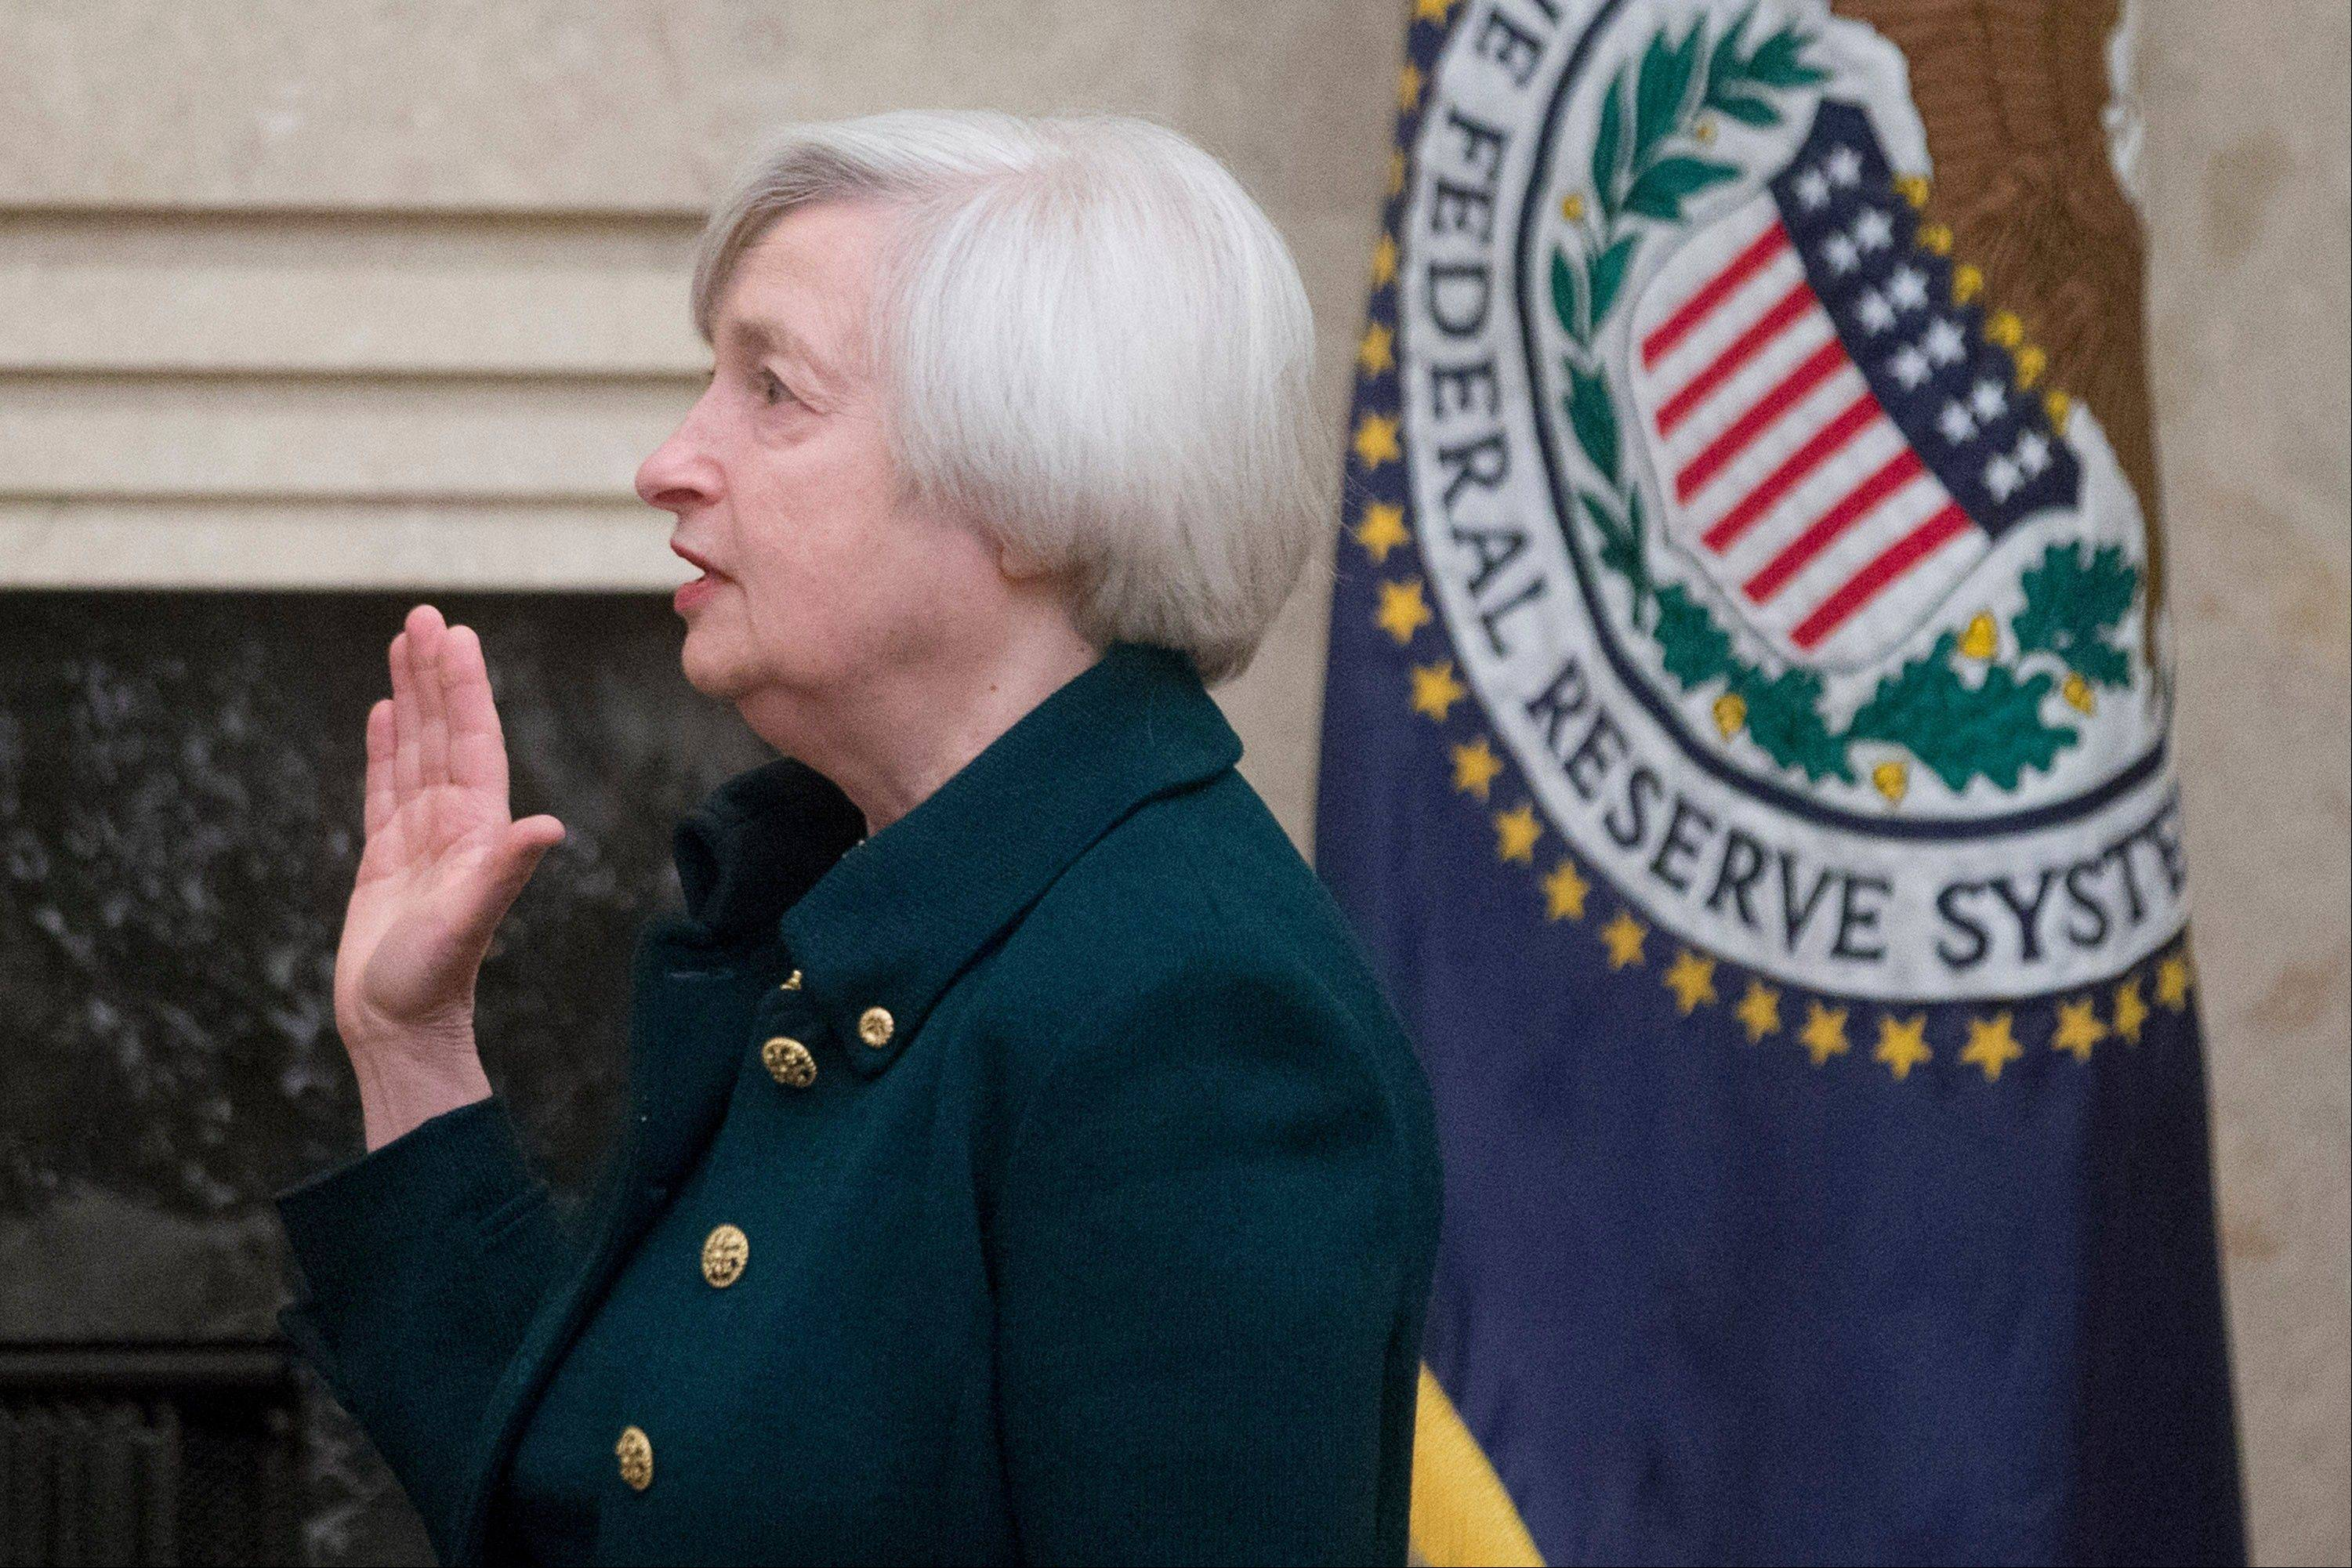 Janet Yellen, chairman of the U.S. Federal Reserve, takes the oath of office as chair of the Board of Governors of the Federal Reserve in Washington on Monday.